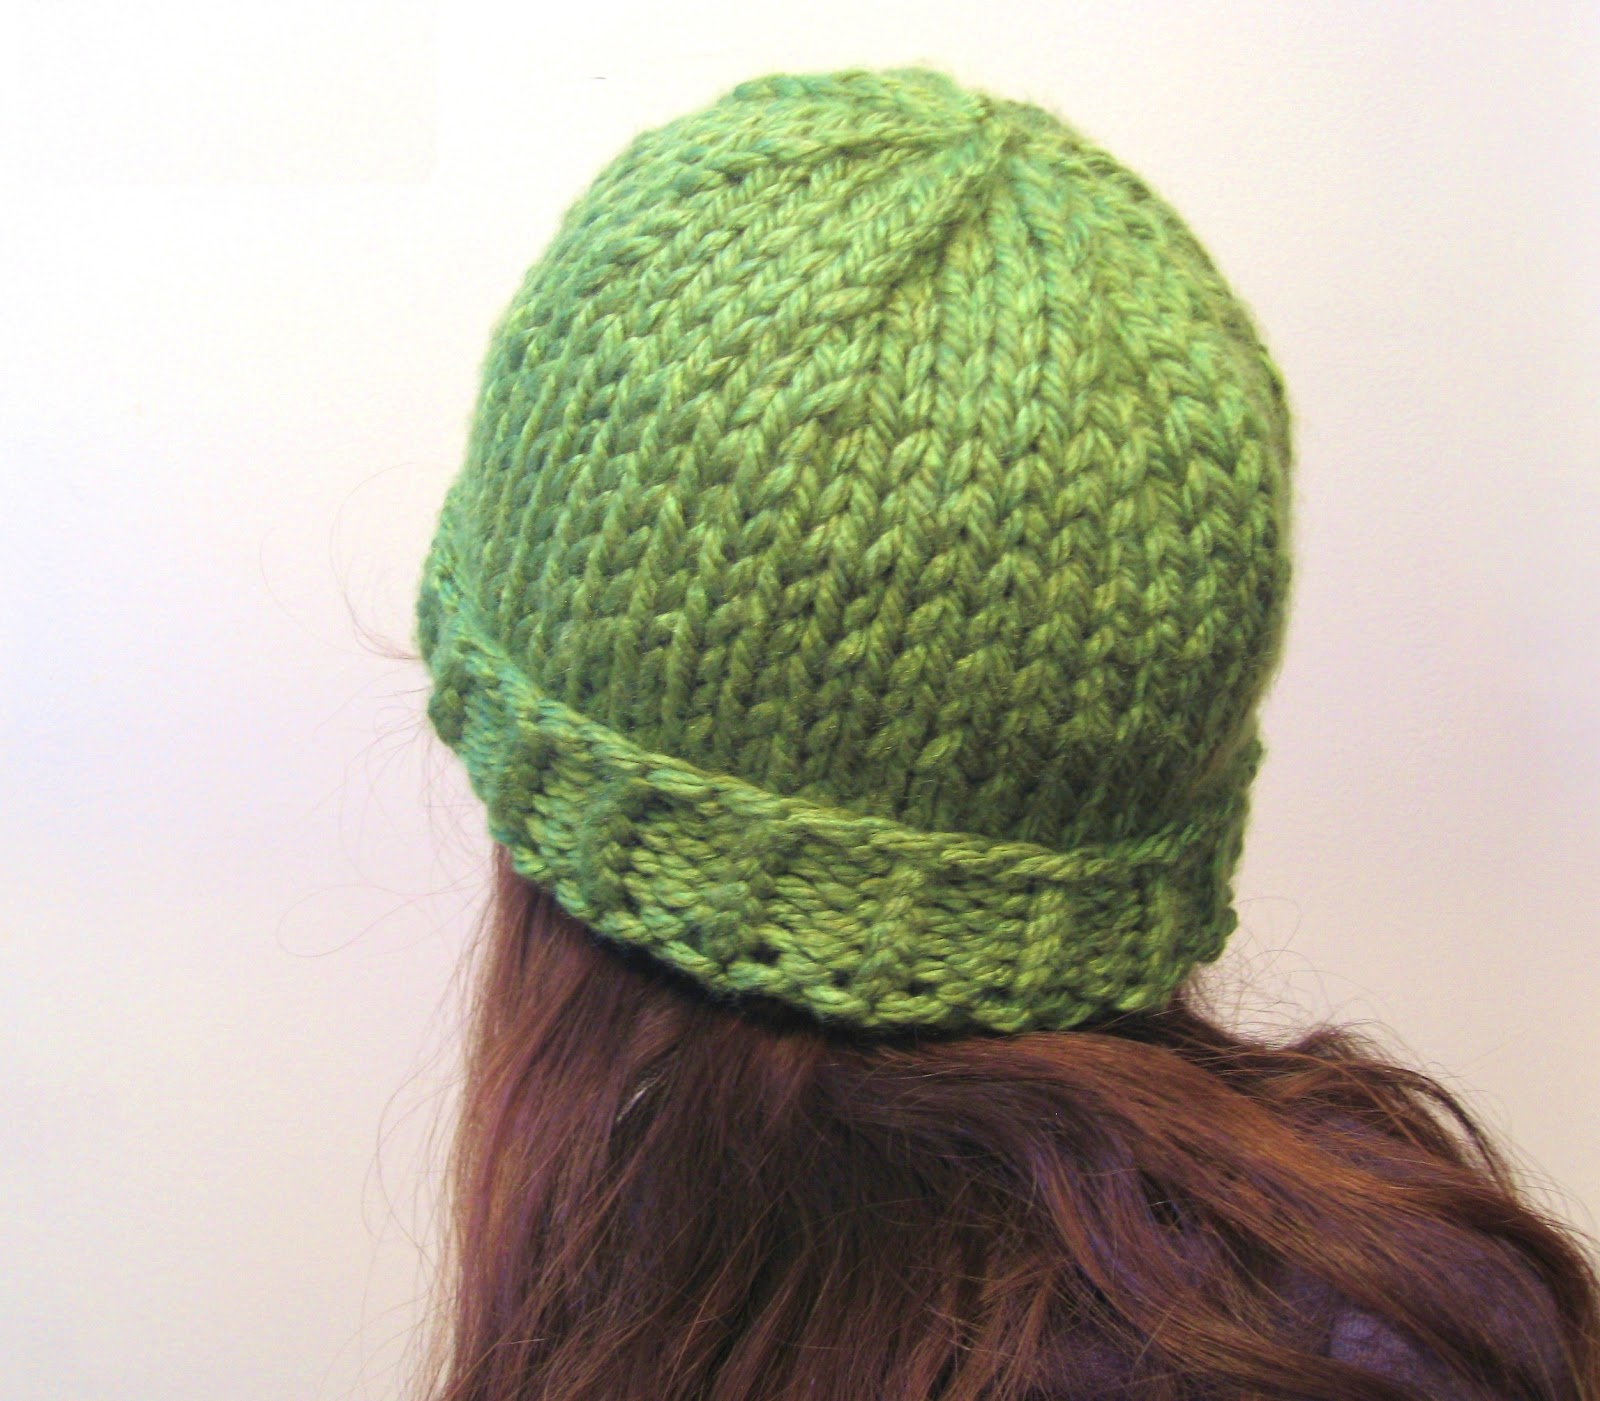 Knit Toque Pattern : megan E sass handknits: Free Knitting Pattern: Easy Chunky Knit Beanie Hat